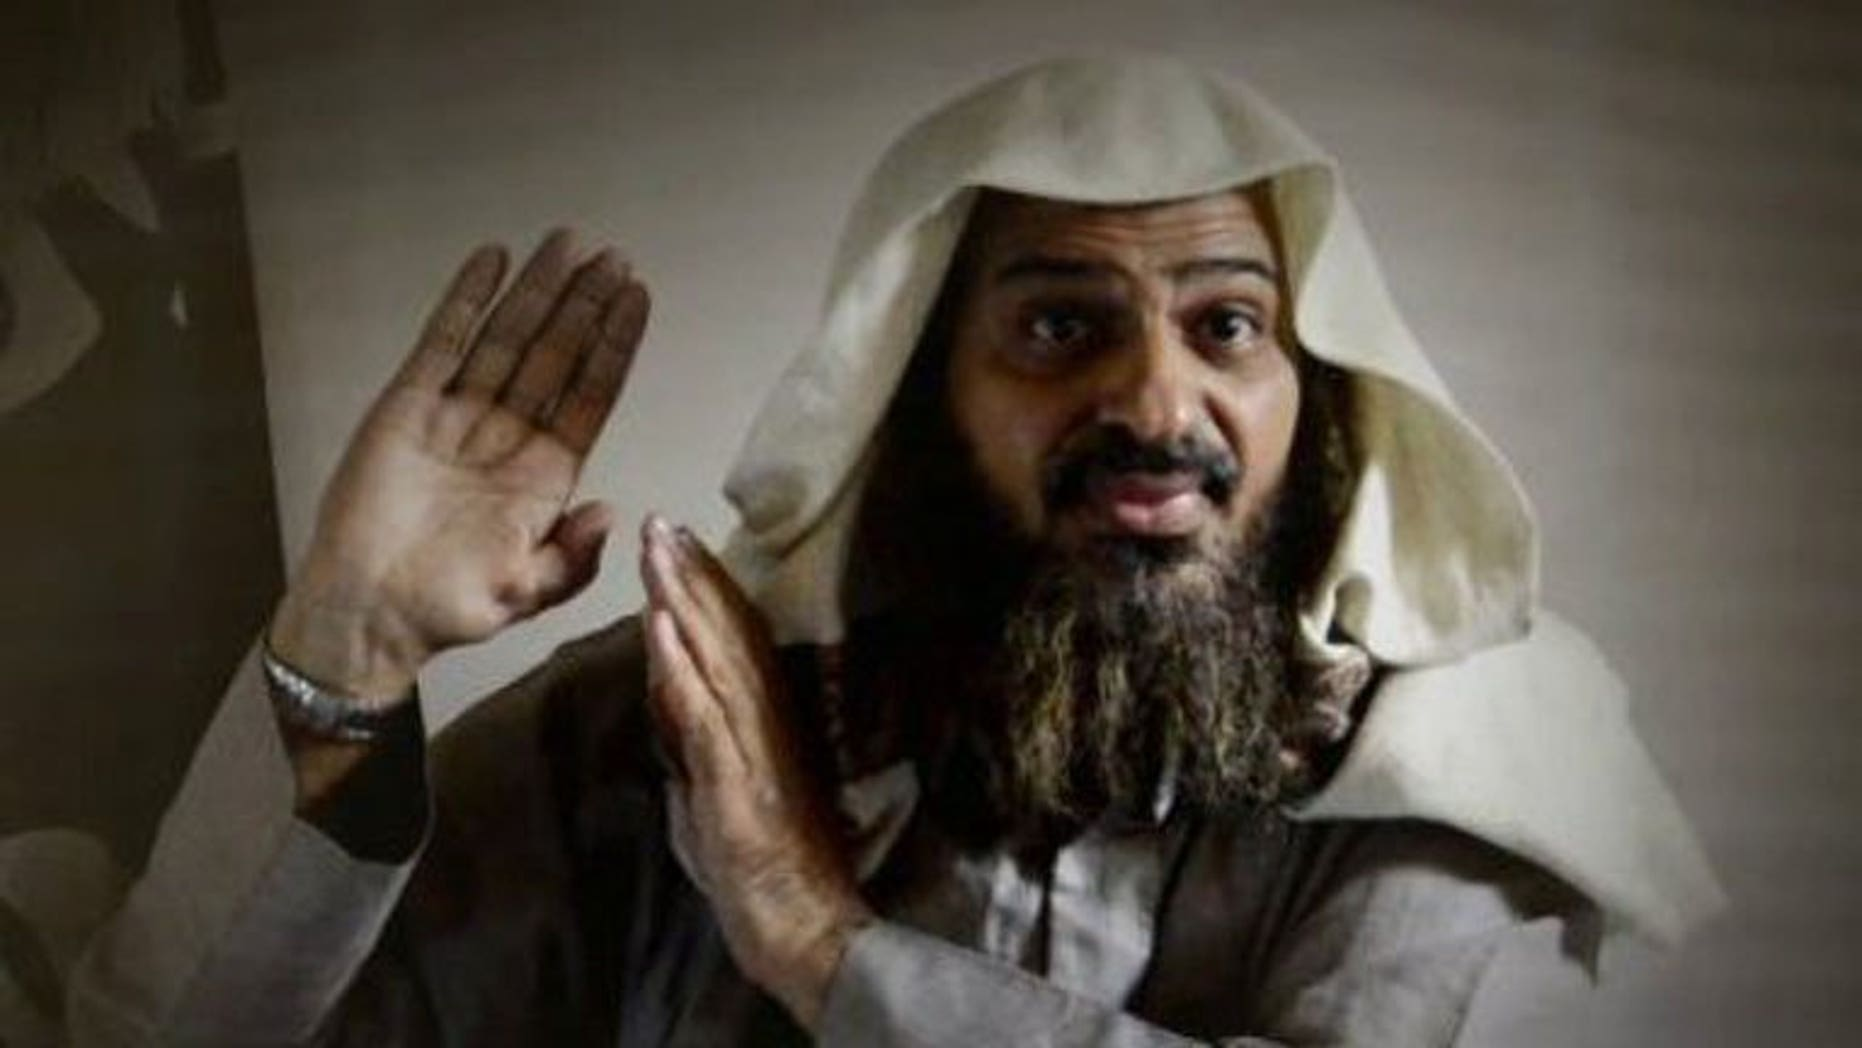 A picture released on July 17, 2013 by the Site Intelligence Group shows an image of then deputy leader of Al-Qaeda in the Arabian Peninsula (AQAP) Sheikh Saeed al-Shehri, aka Abu Sufyan al-Azdi. In mid-July AQAP confirmed the death in a US drone strike of al-Shehri, a former Guantanamo Bay prisoner in Cuba who had undergone rehabilitation in Saudi Arabia after his release.